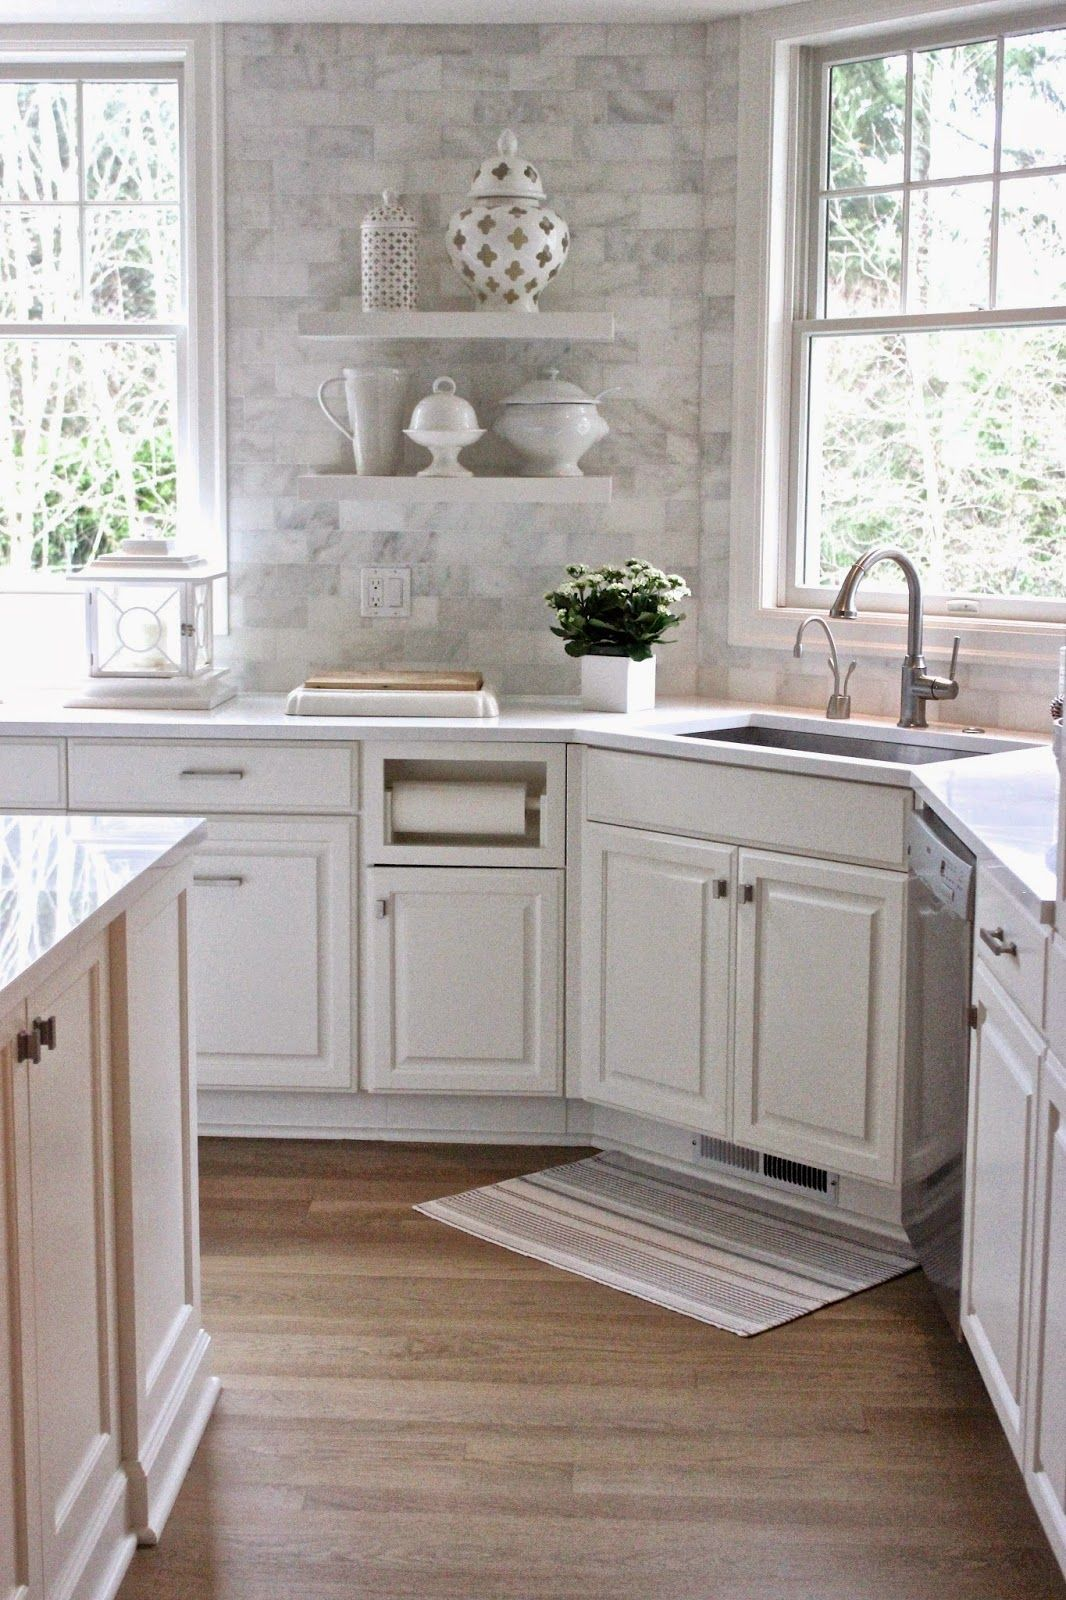 White Quartz countertops and the backsplash is Carrera Marble subway ...